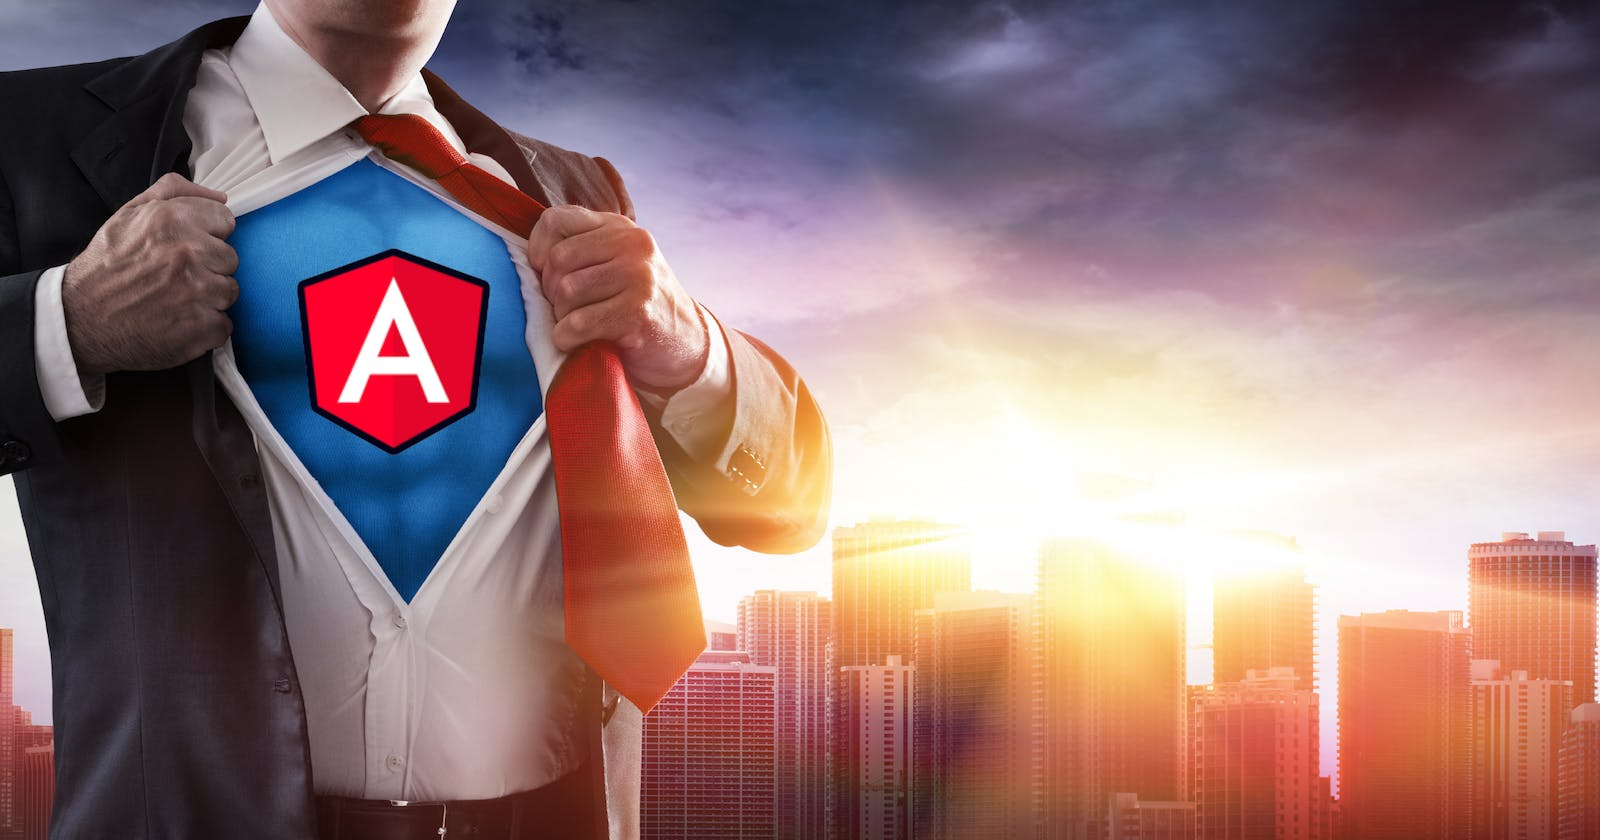 What are the benefits of using Angular?